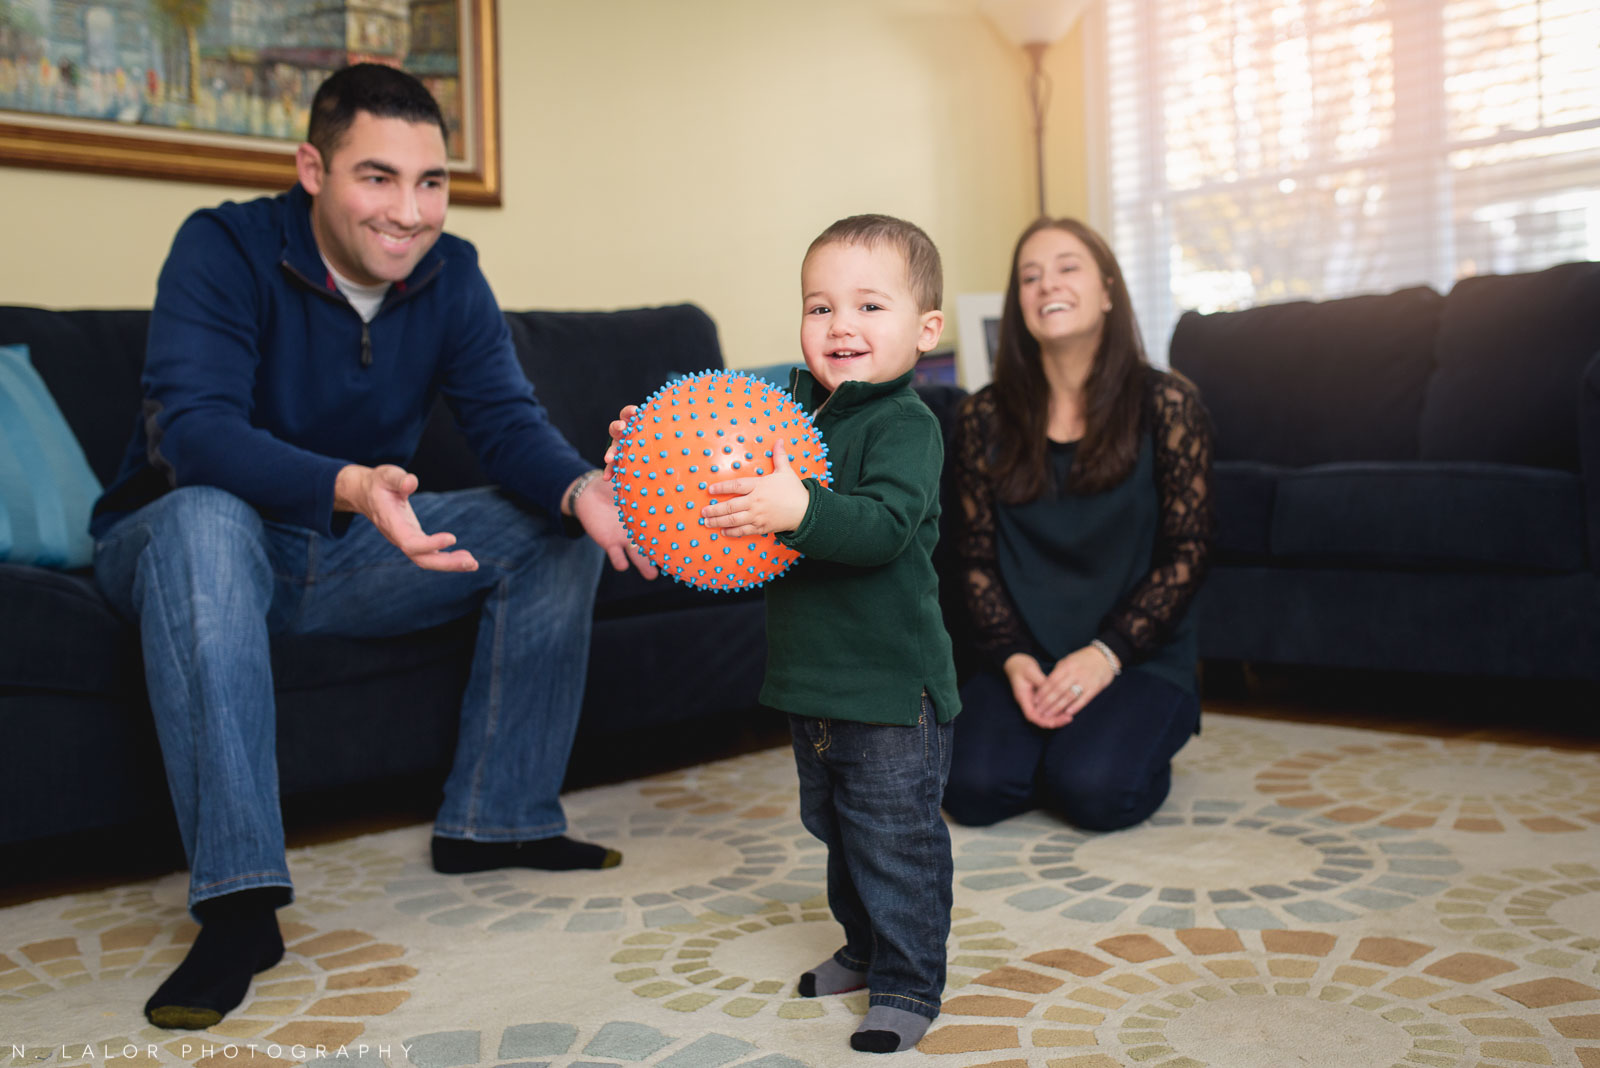 Playing ball in the living room. Lifestyle family photoshoot by N. Lalor Photography.